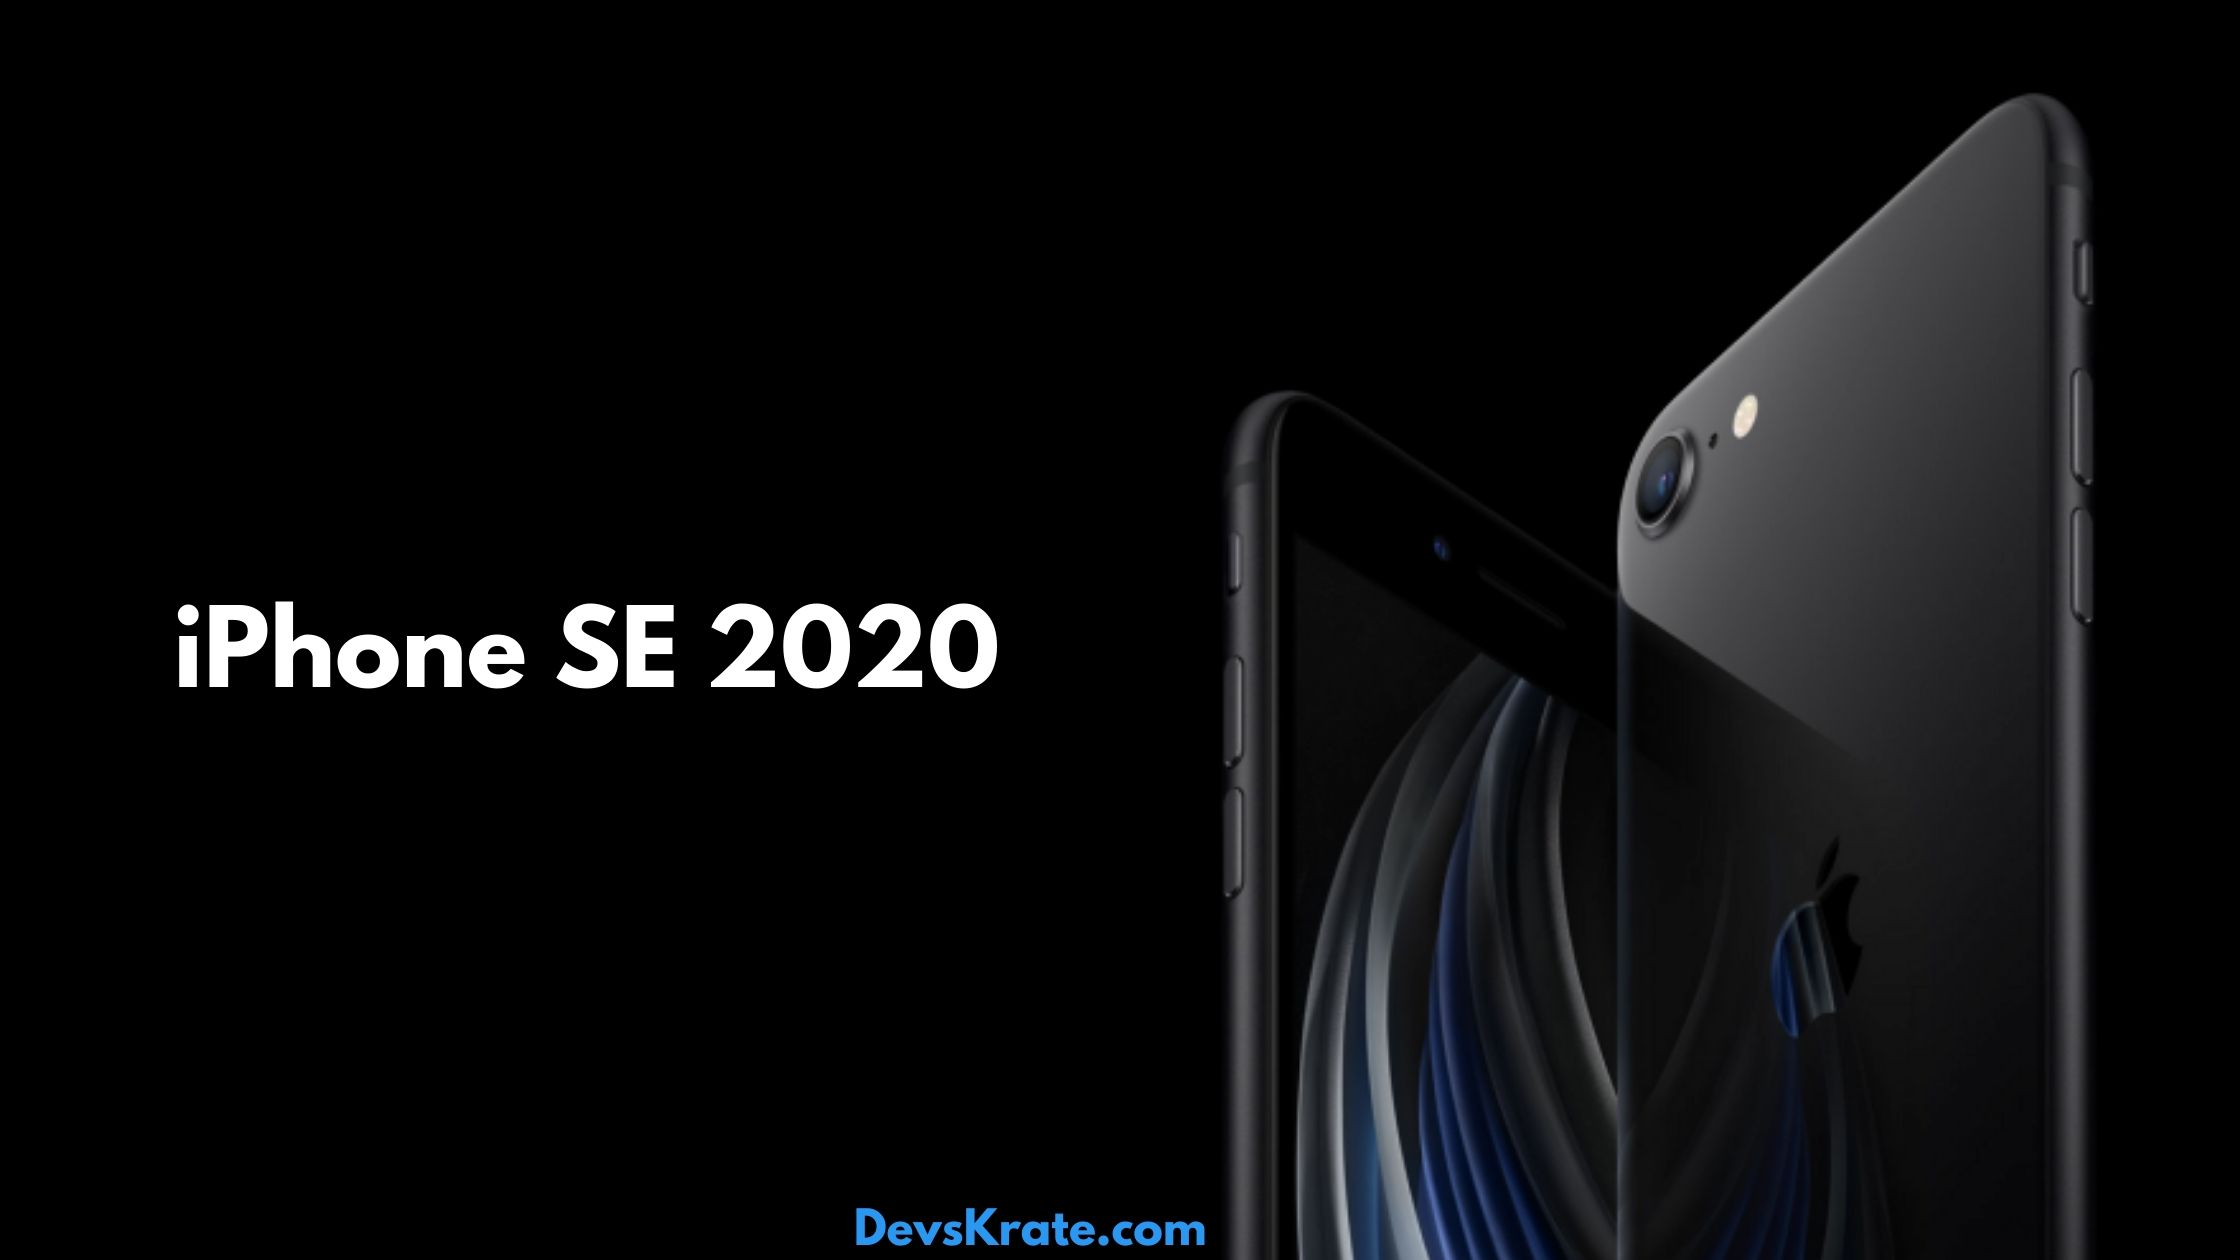 Apple iPhone SE 2020 is ready!